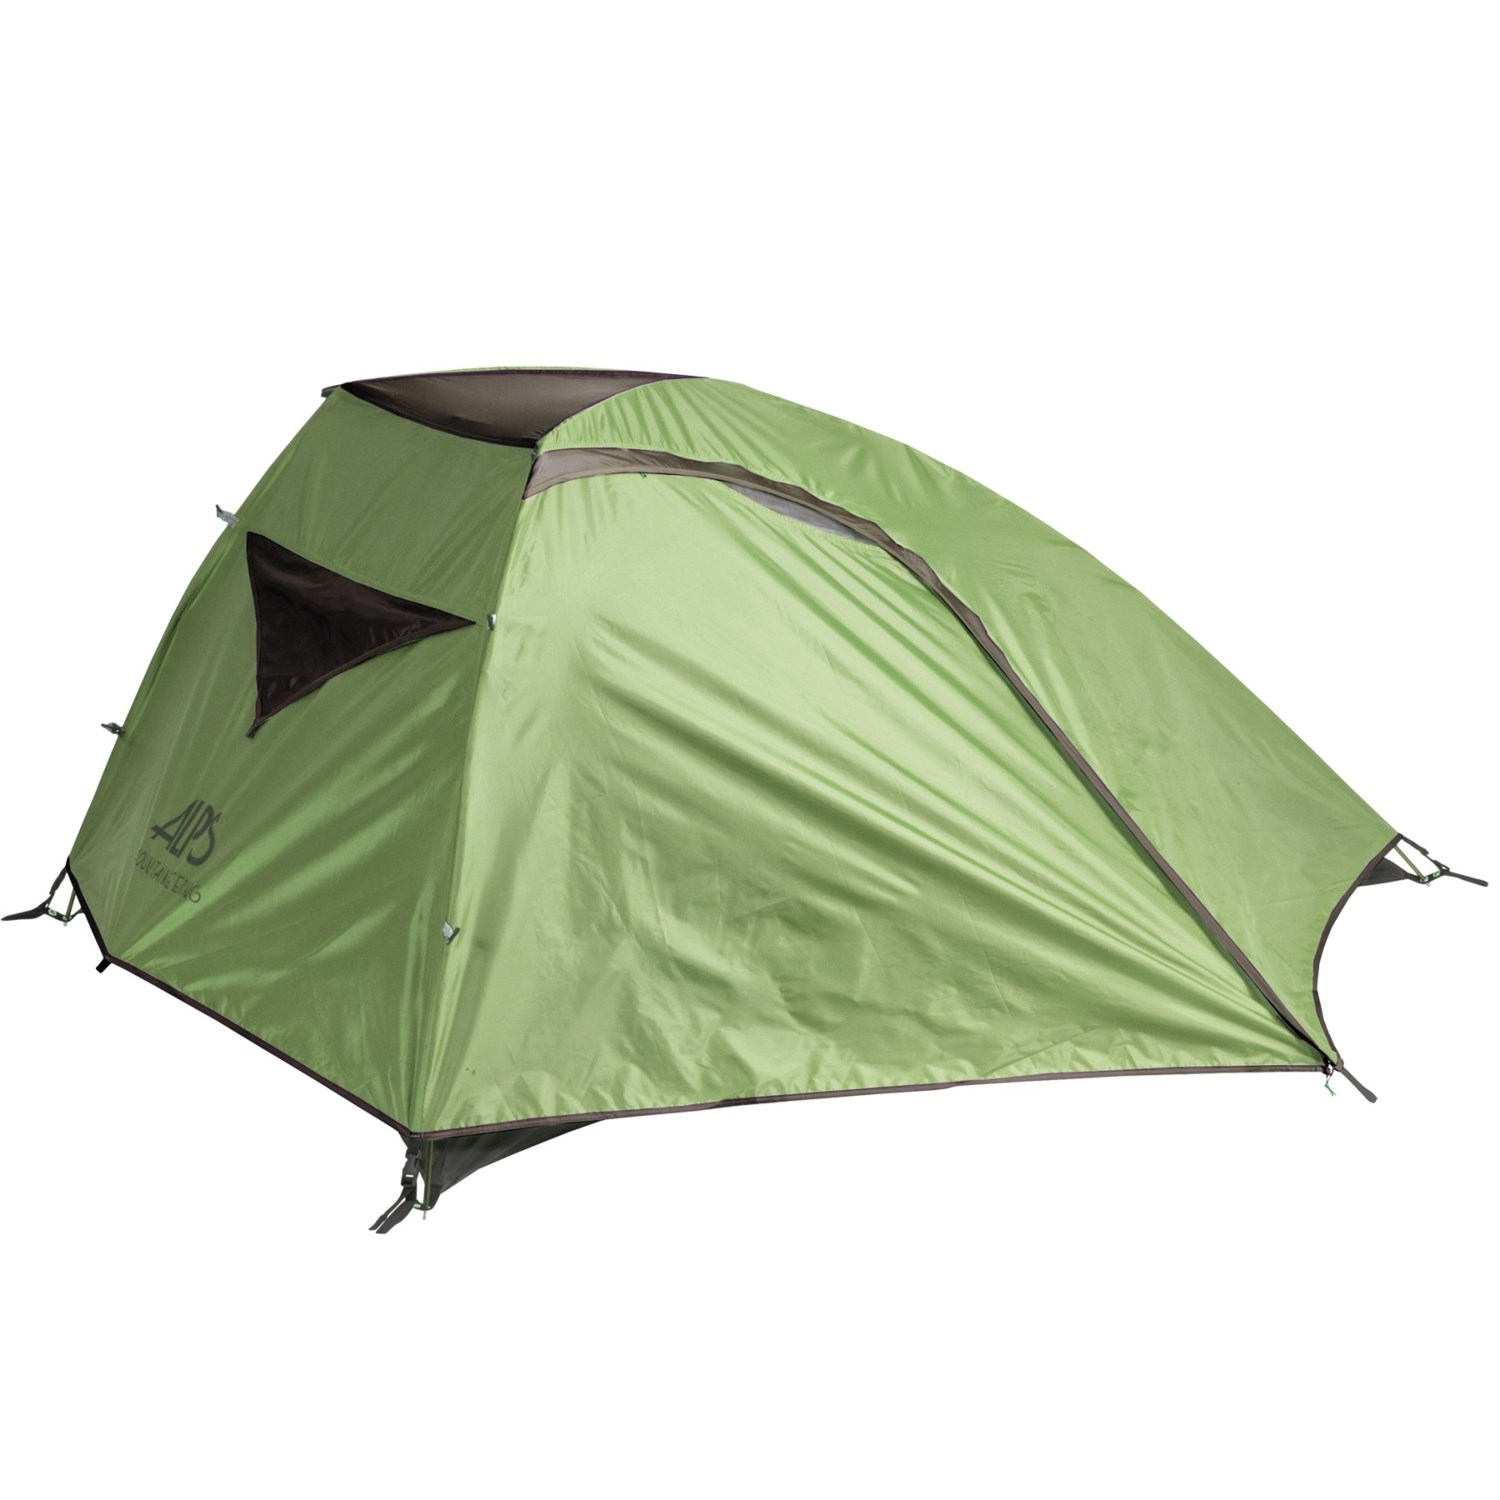 ALPS Mountaineering Zenith 3 AL Tent - 3-Person 3-Season  sc 1 st  Sierra Trading Post & ALPS Mountaineering Zenith 3 AL Tent - 3-Person 3-Season - Save 48%